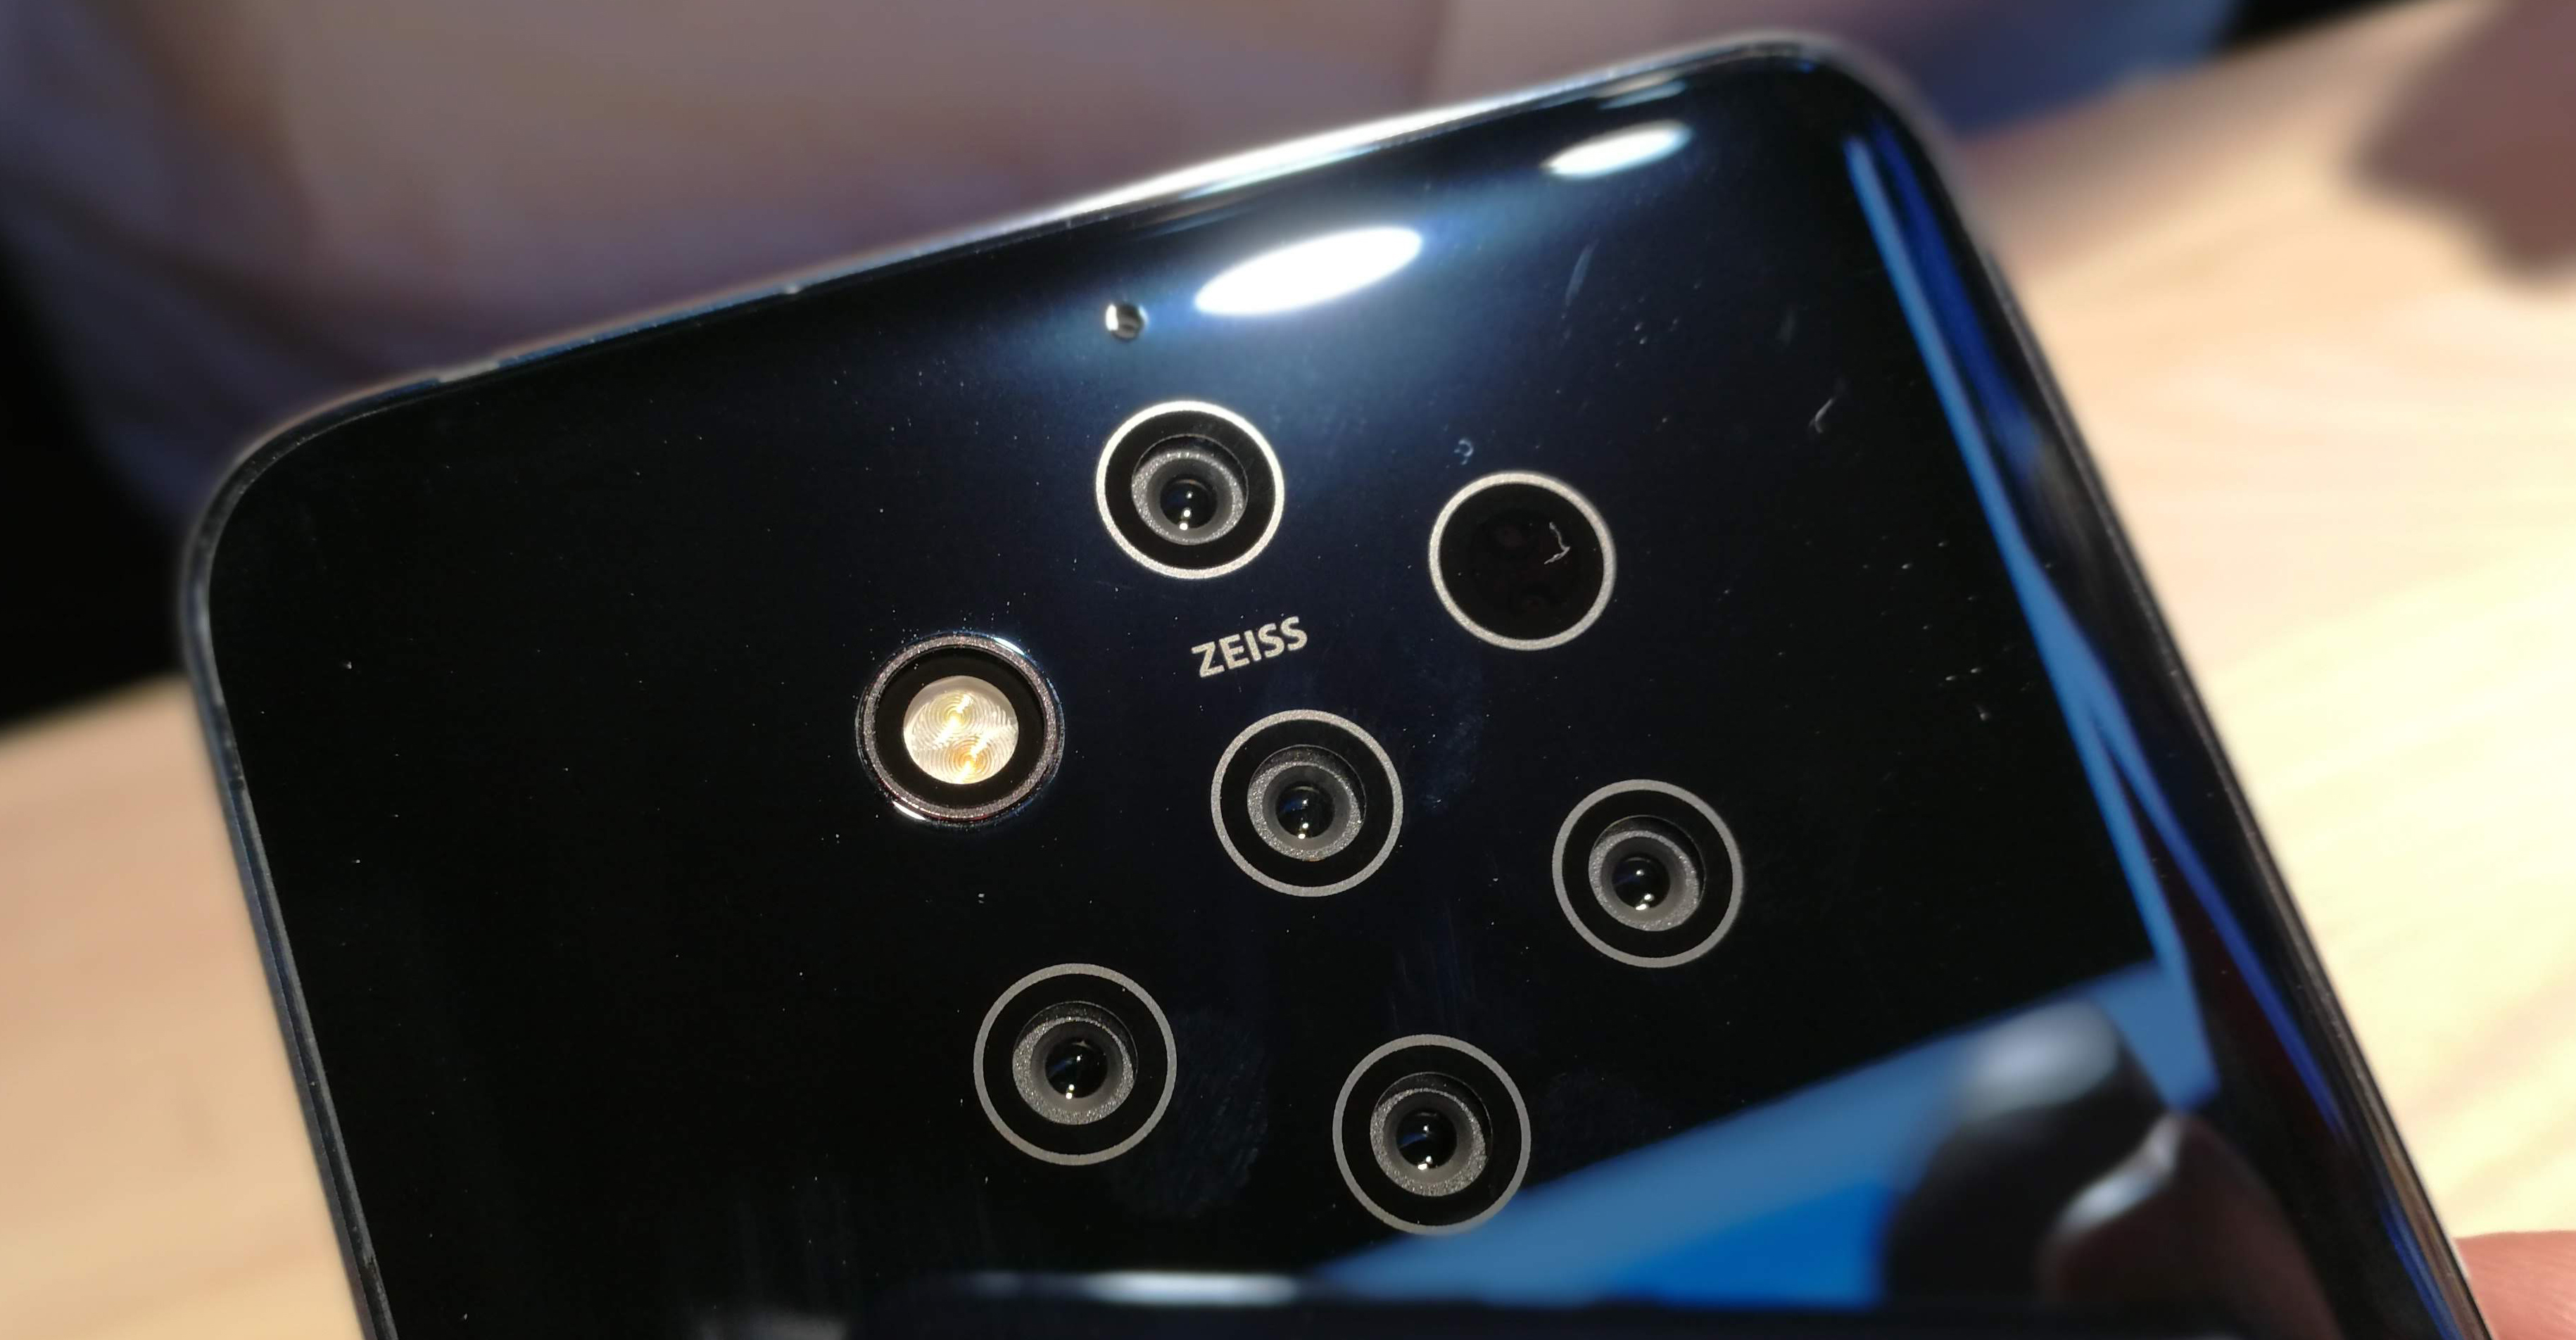 Nokia Launches Nokia 9 PureView at MWC 2019: So I Heard You Like Cameras